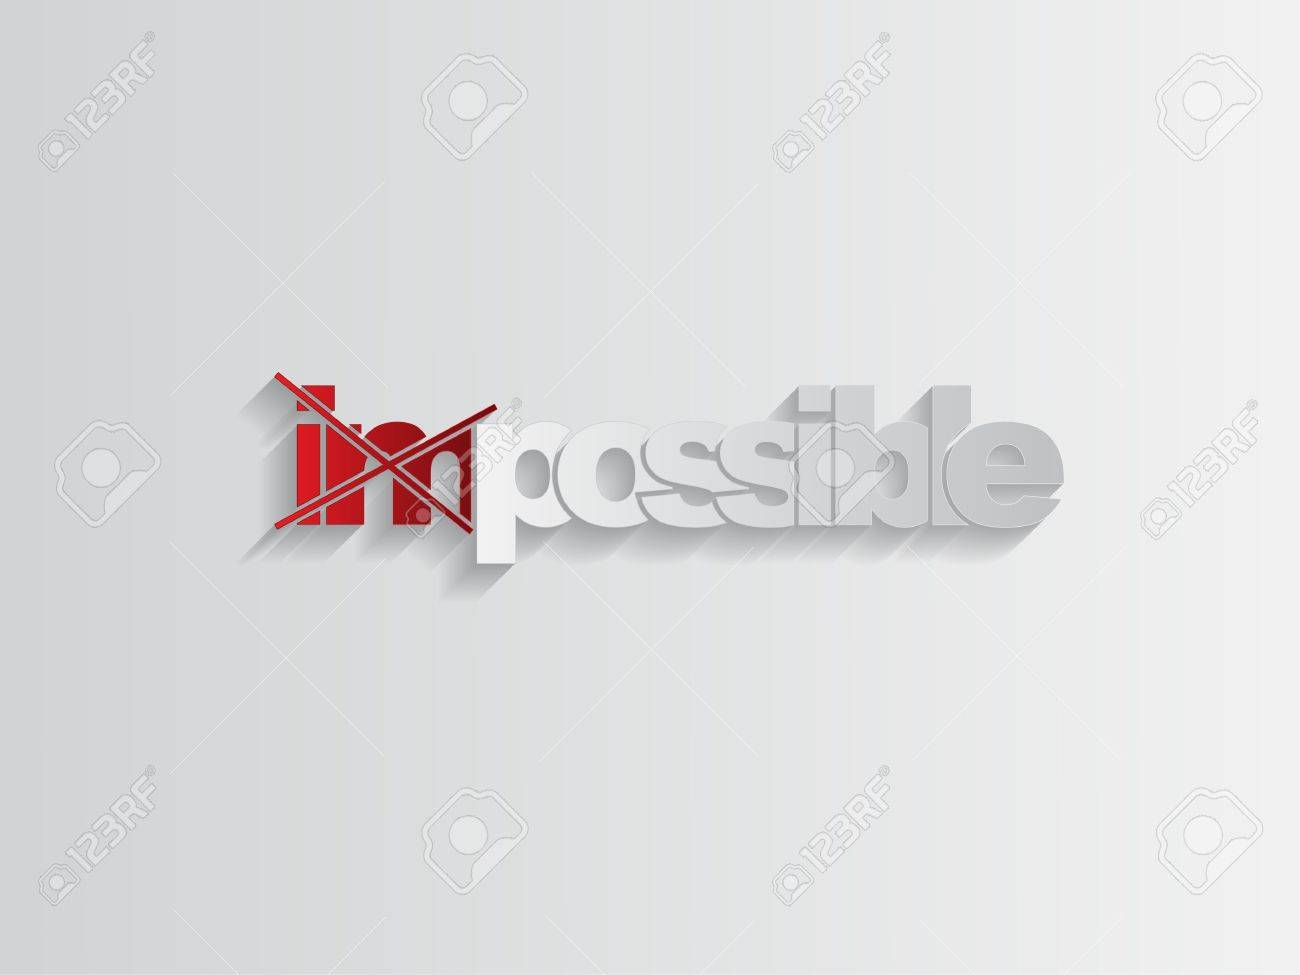 Word impossible transformed into possible, motivation concept - 17853394